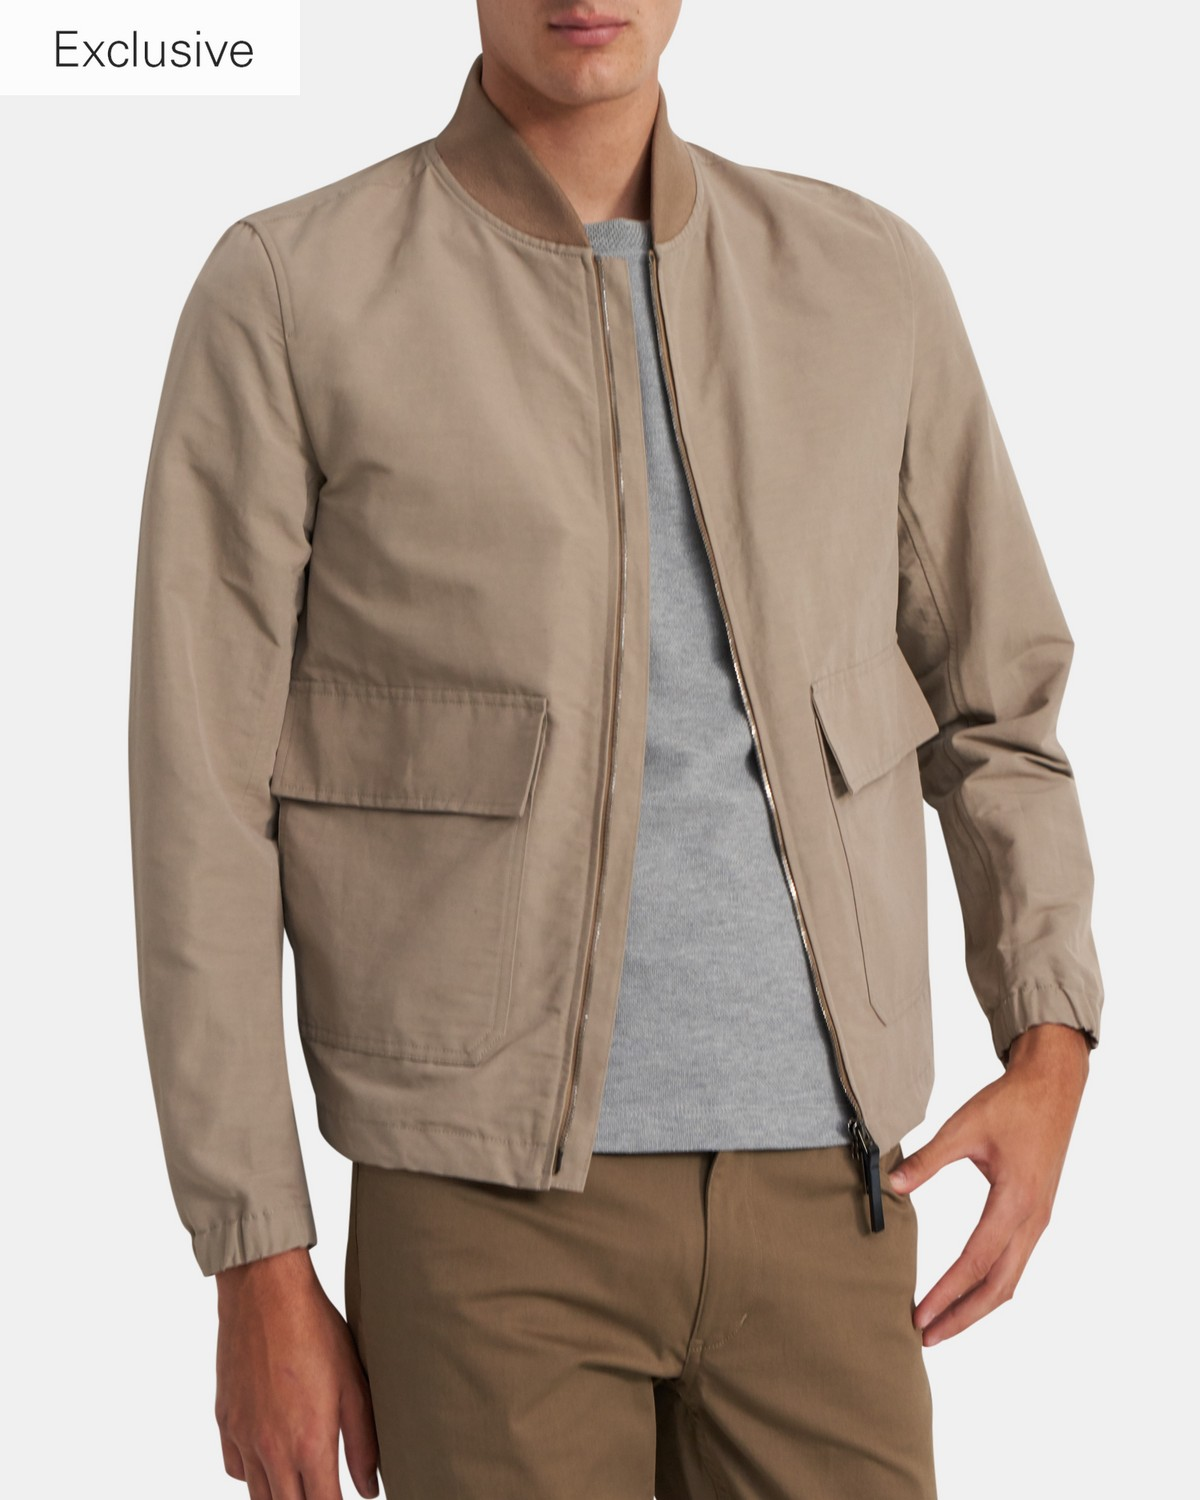 City Utility Bomber Jacket in Linen Blend